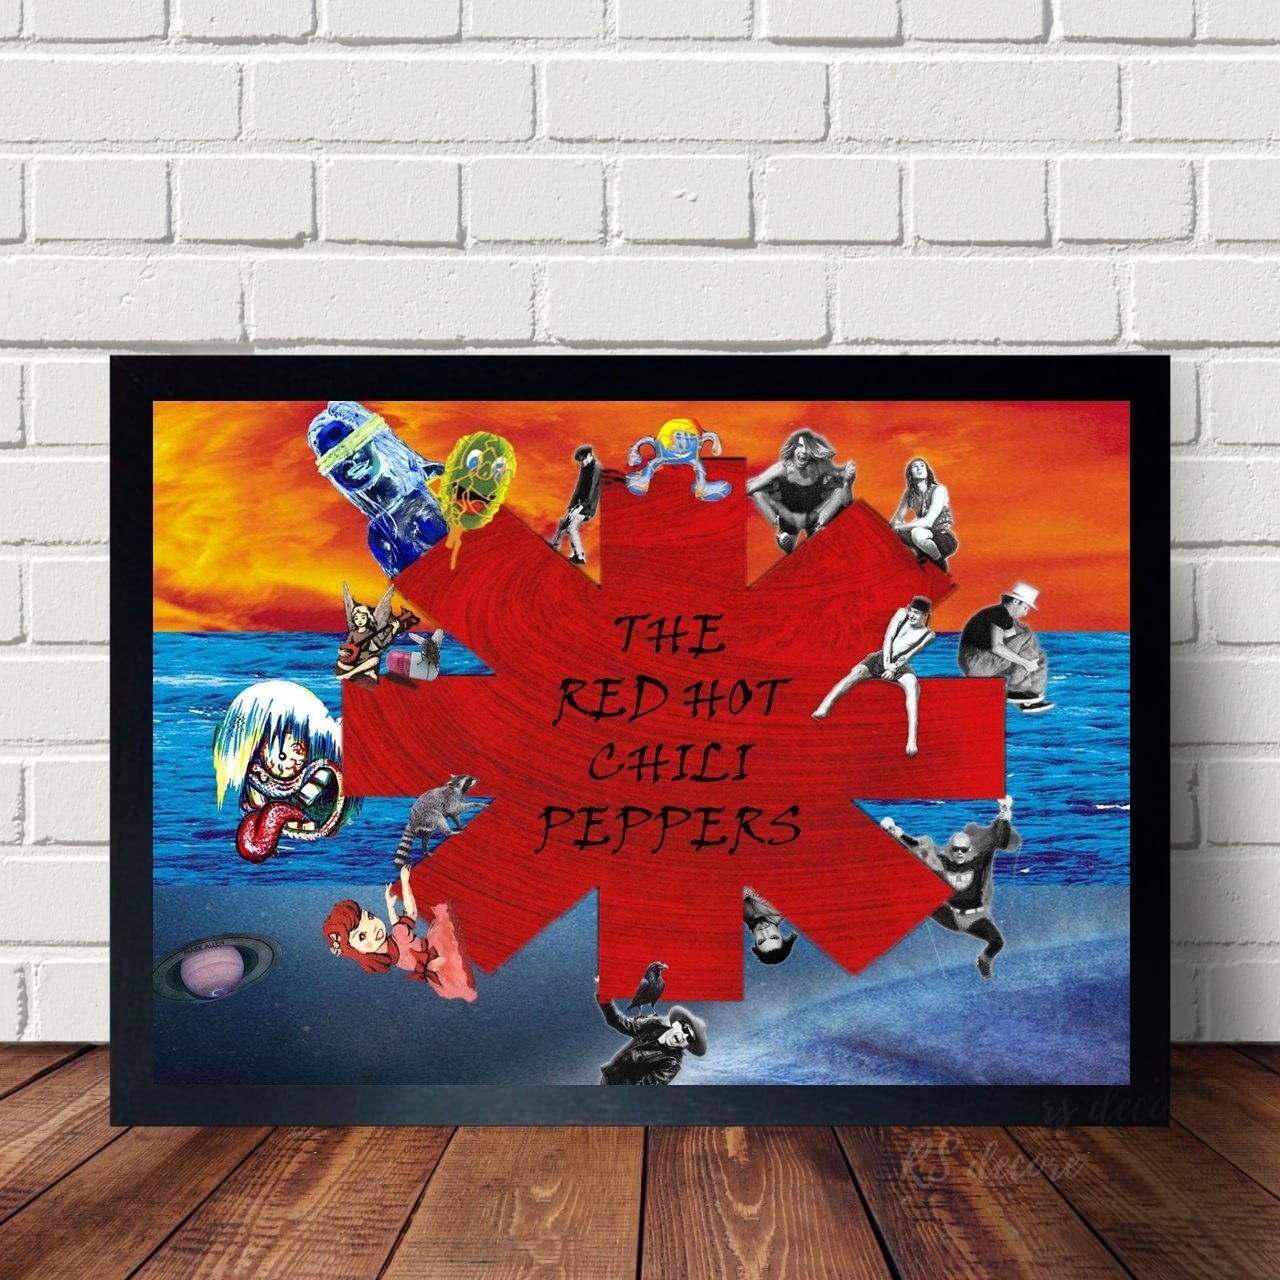 Quadro Decorativo Red Hot Chili Peppers XII